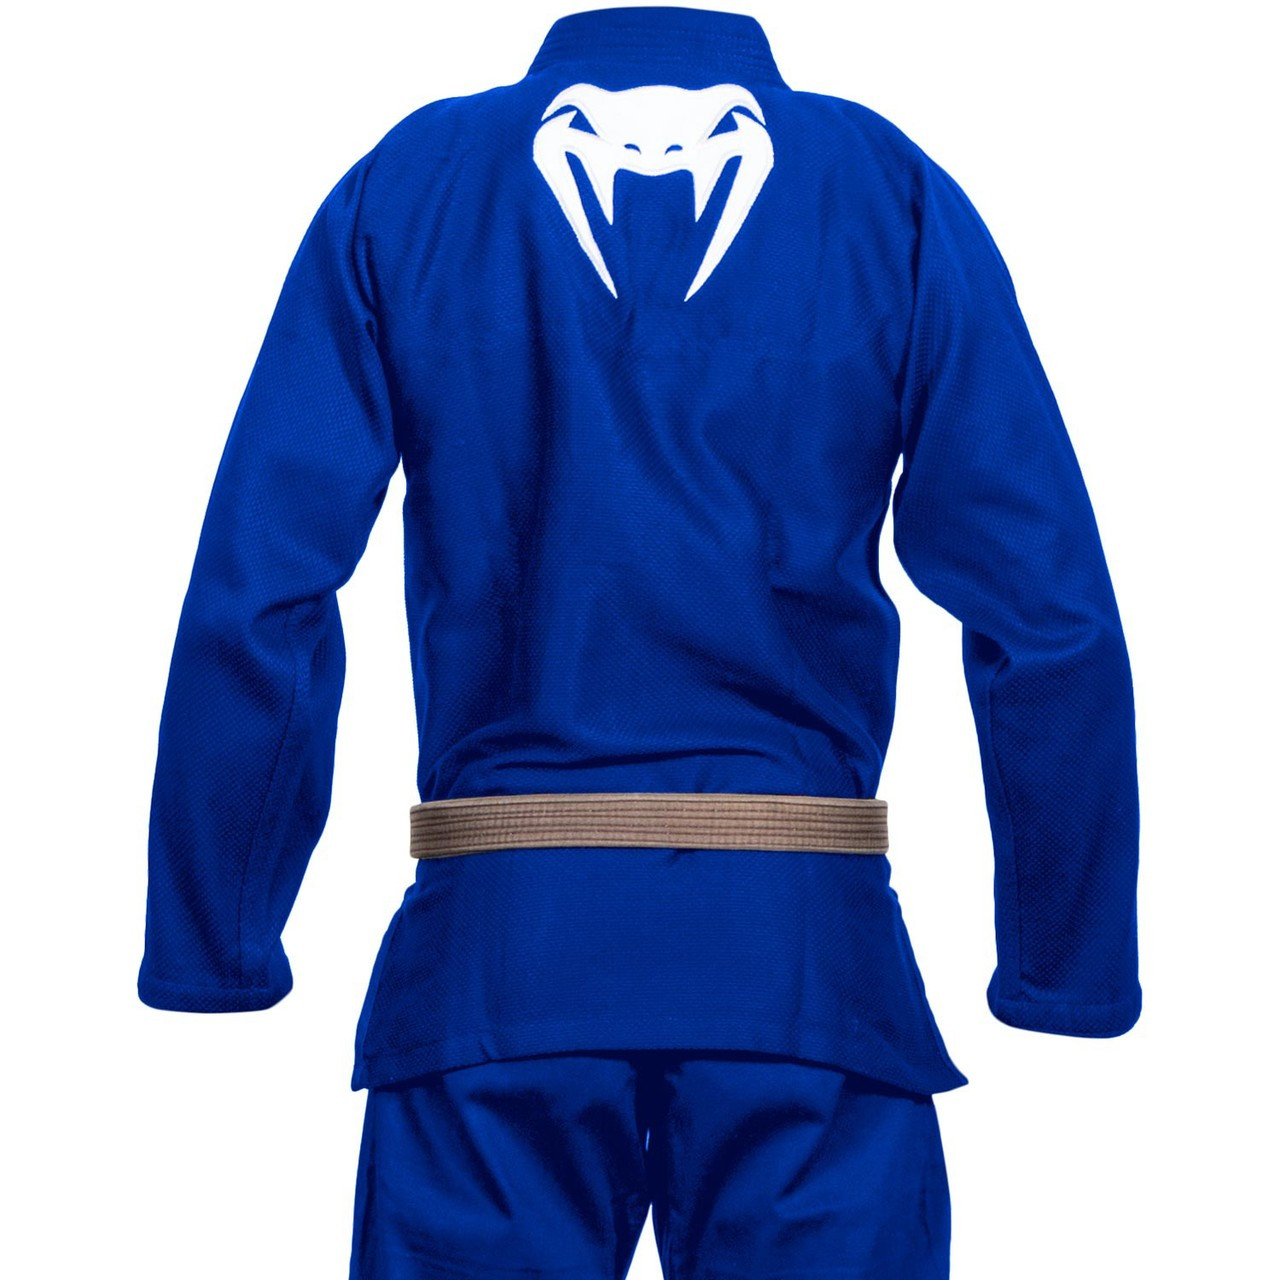 Back of the Venum Contender 2.0 Blue BJJ GI available at www.thejiujitsushop.com  Enjoy Free Shipping from The Jiu Jitsu Shop today!